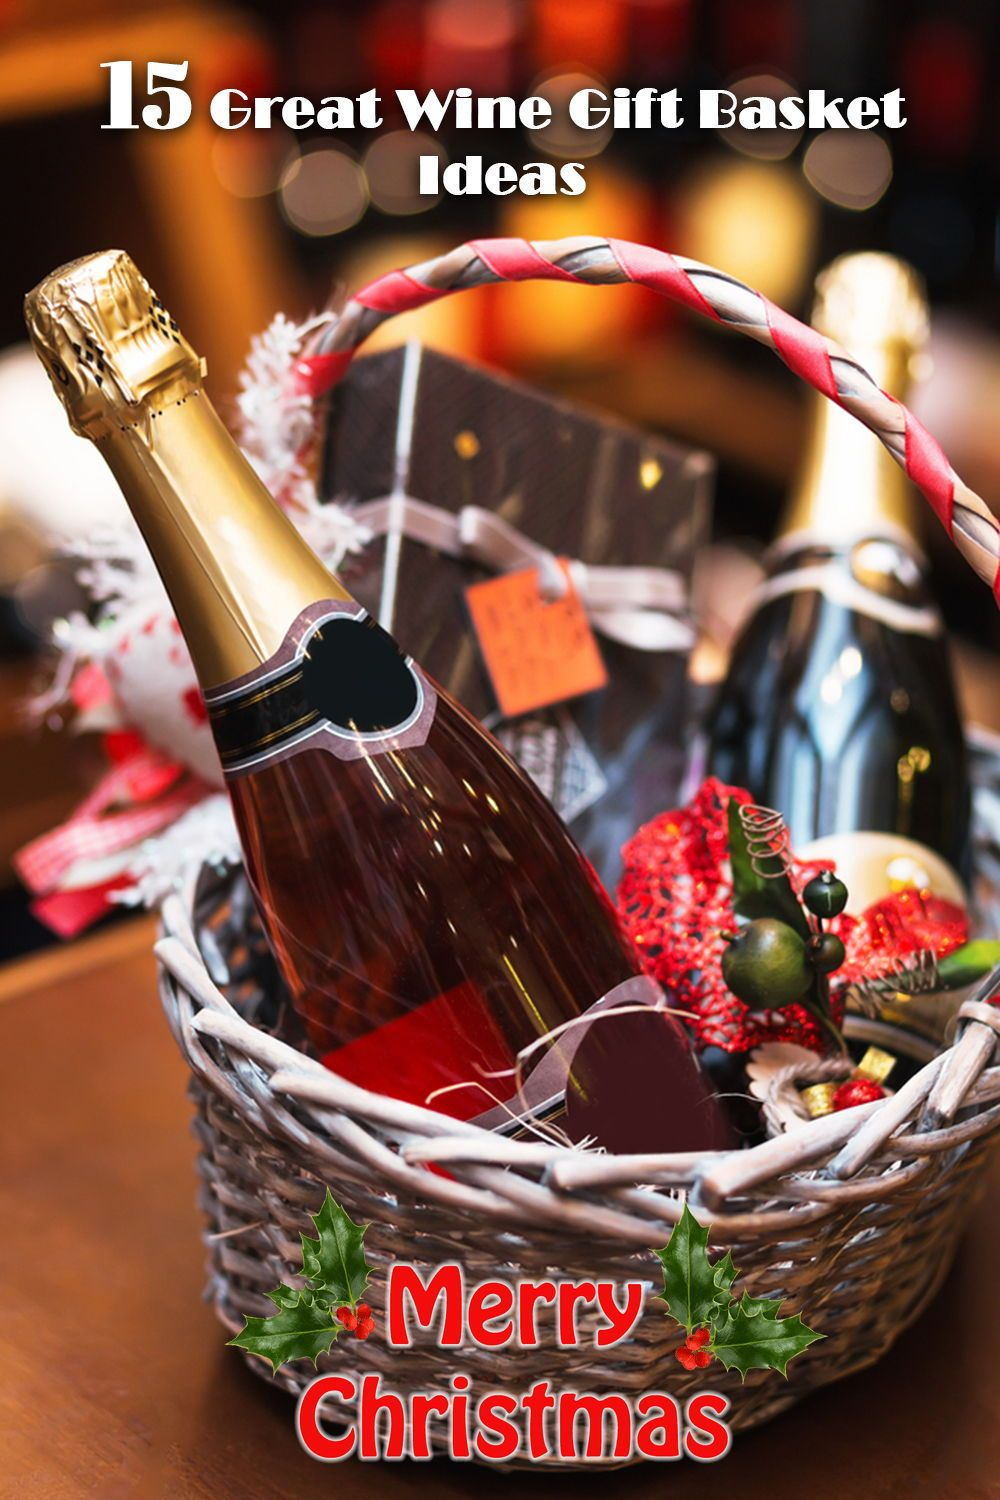 15 Great Wine Gift Basket Ideas In 2019 Grills Forever Wine Gift Baskets Wine Gifts Red Wine Gifts